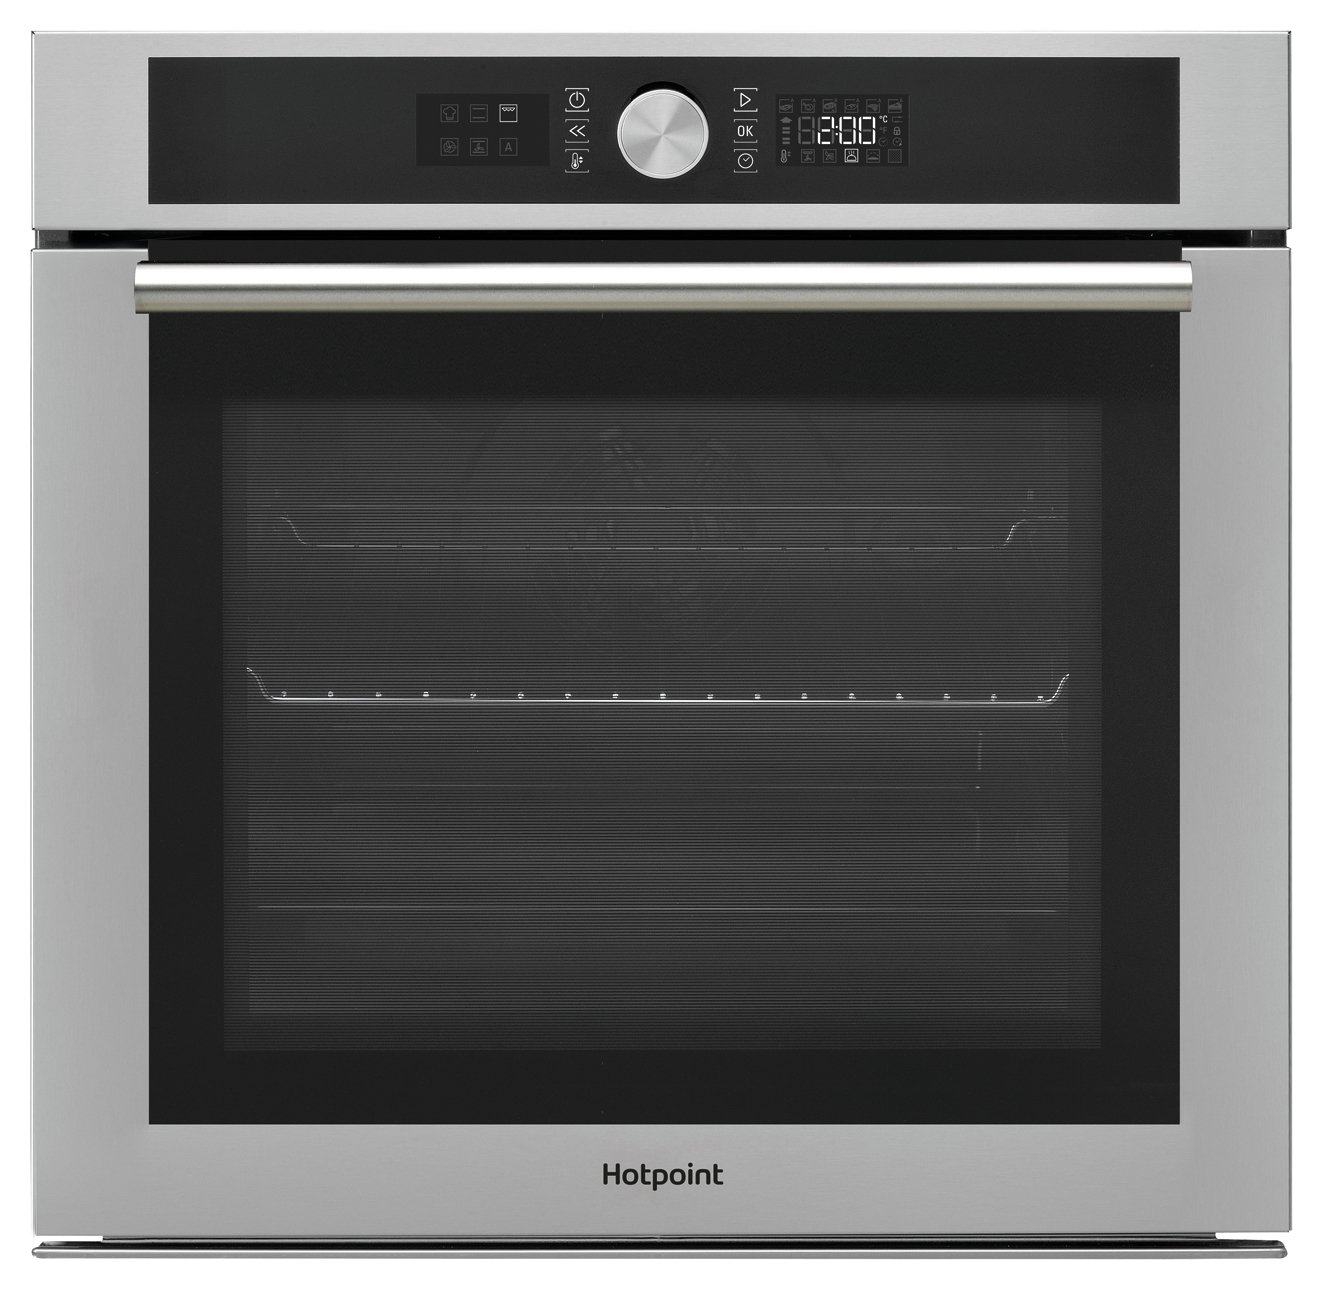 Hotpoint SI4 854 P IX Built-In Single Oven - Stainless Steel